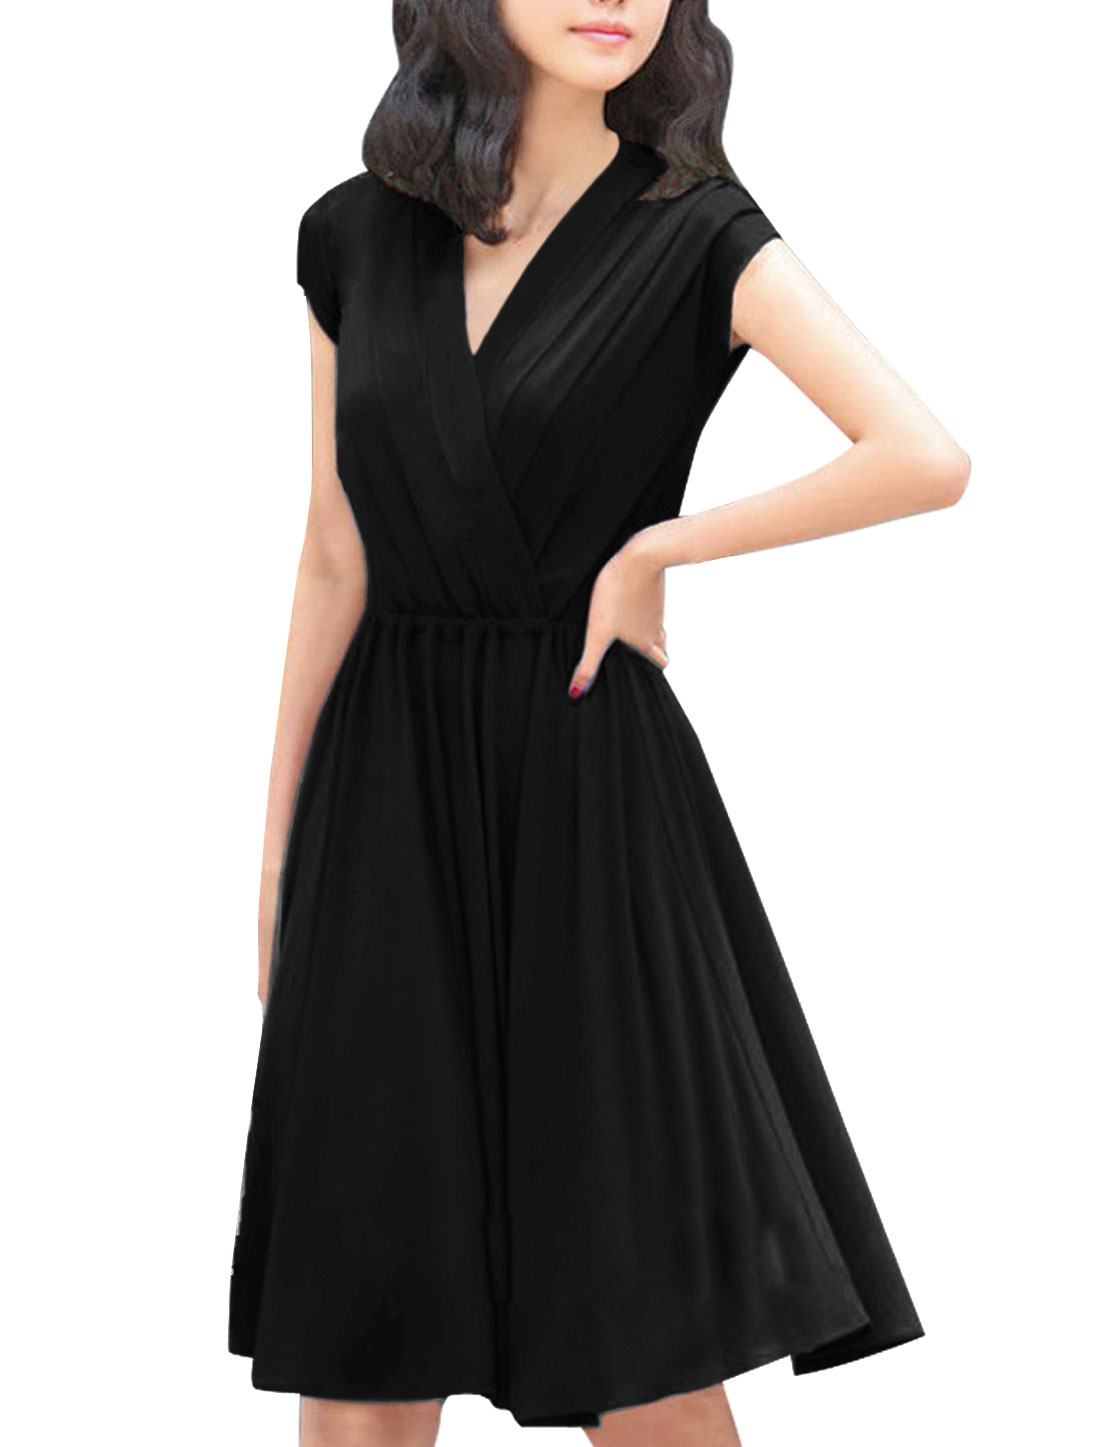 Women Stylish Pullover Solid Black Knee-Length Dress XL